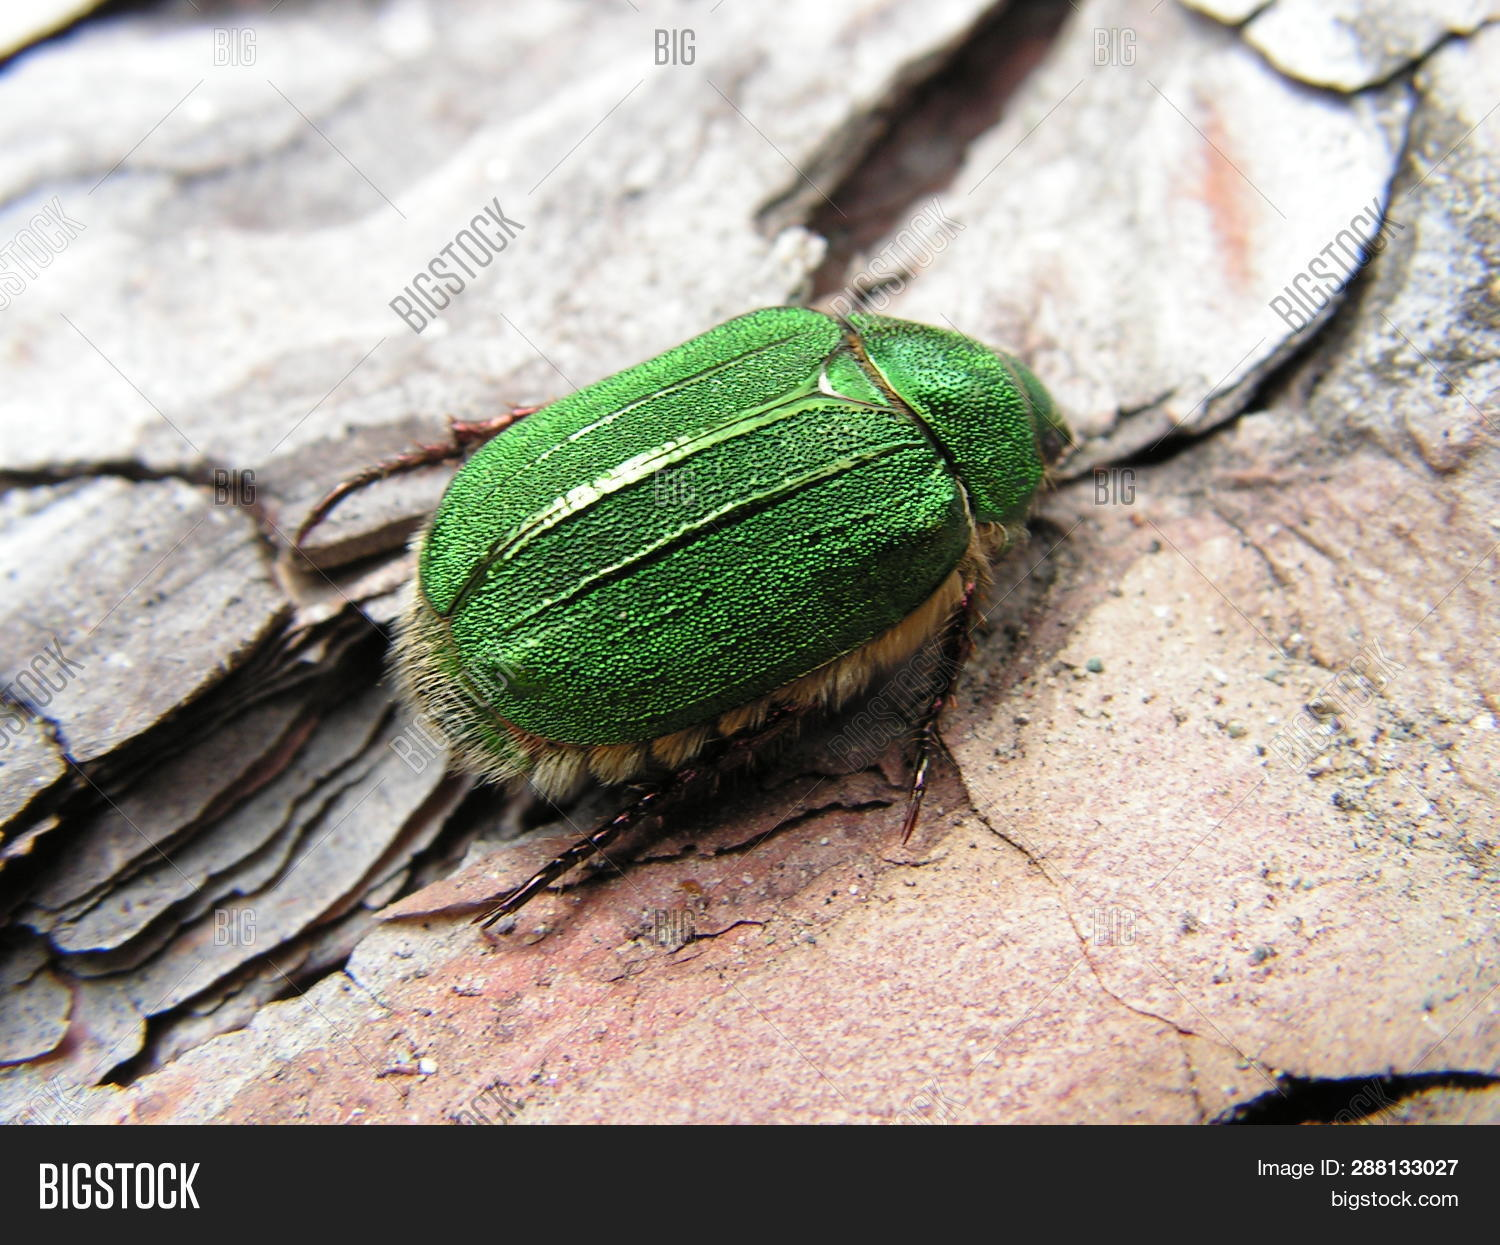 Green Chafer Bug Image & Photo (Free Trial) | Bigstock